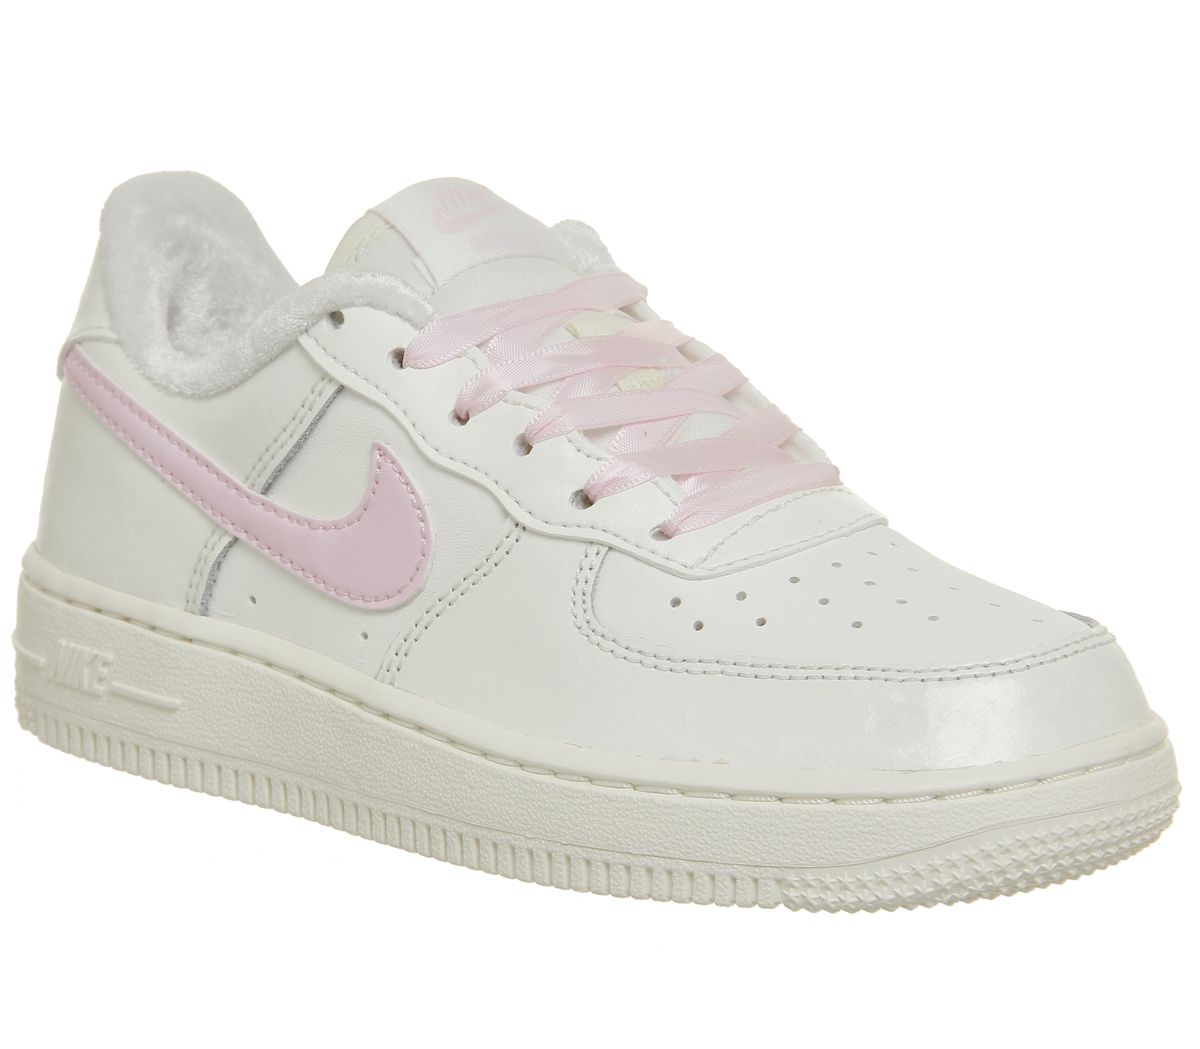 new style 64d7c d6cf2 Nike Air Force 1 Ps White Artic Pink - Unisex